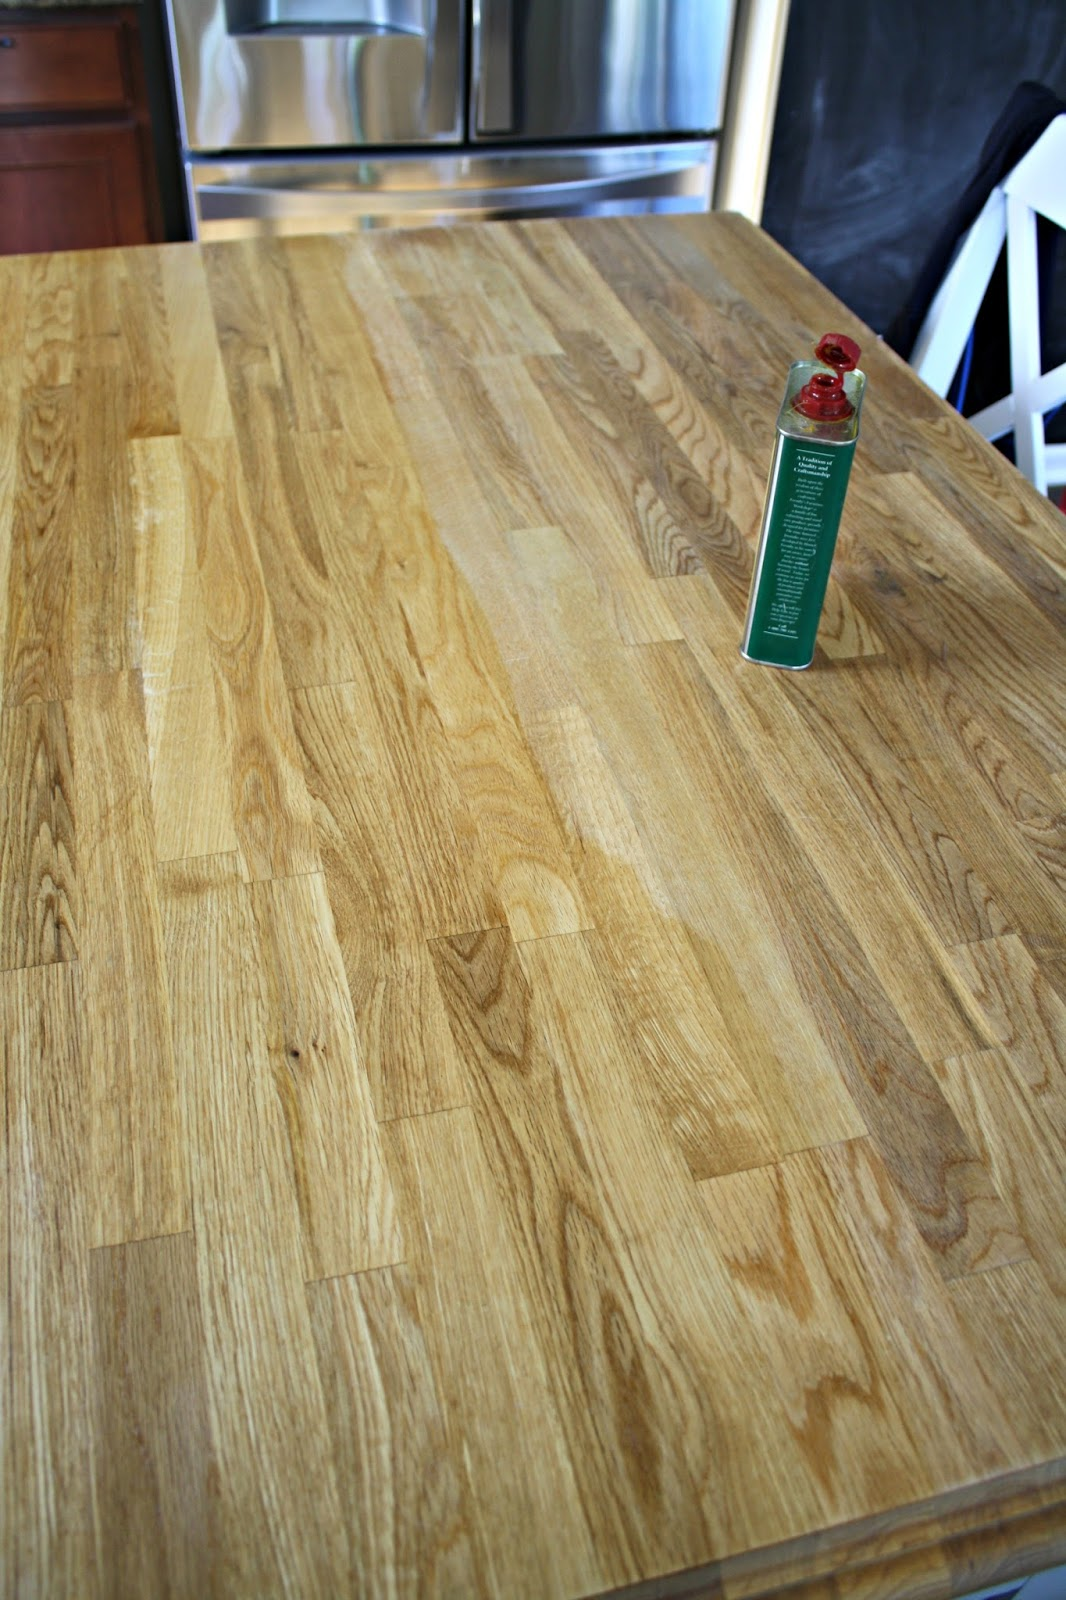 Tung Oil For Butcher Block Countertops Everything You Need To Know About Butcher Block Counters